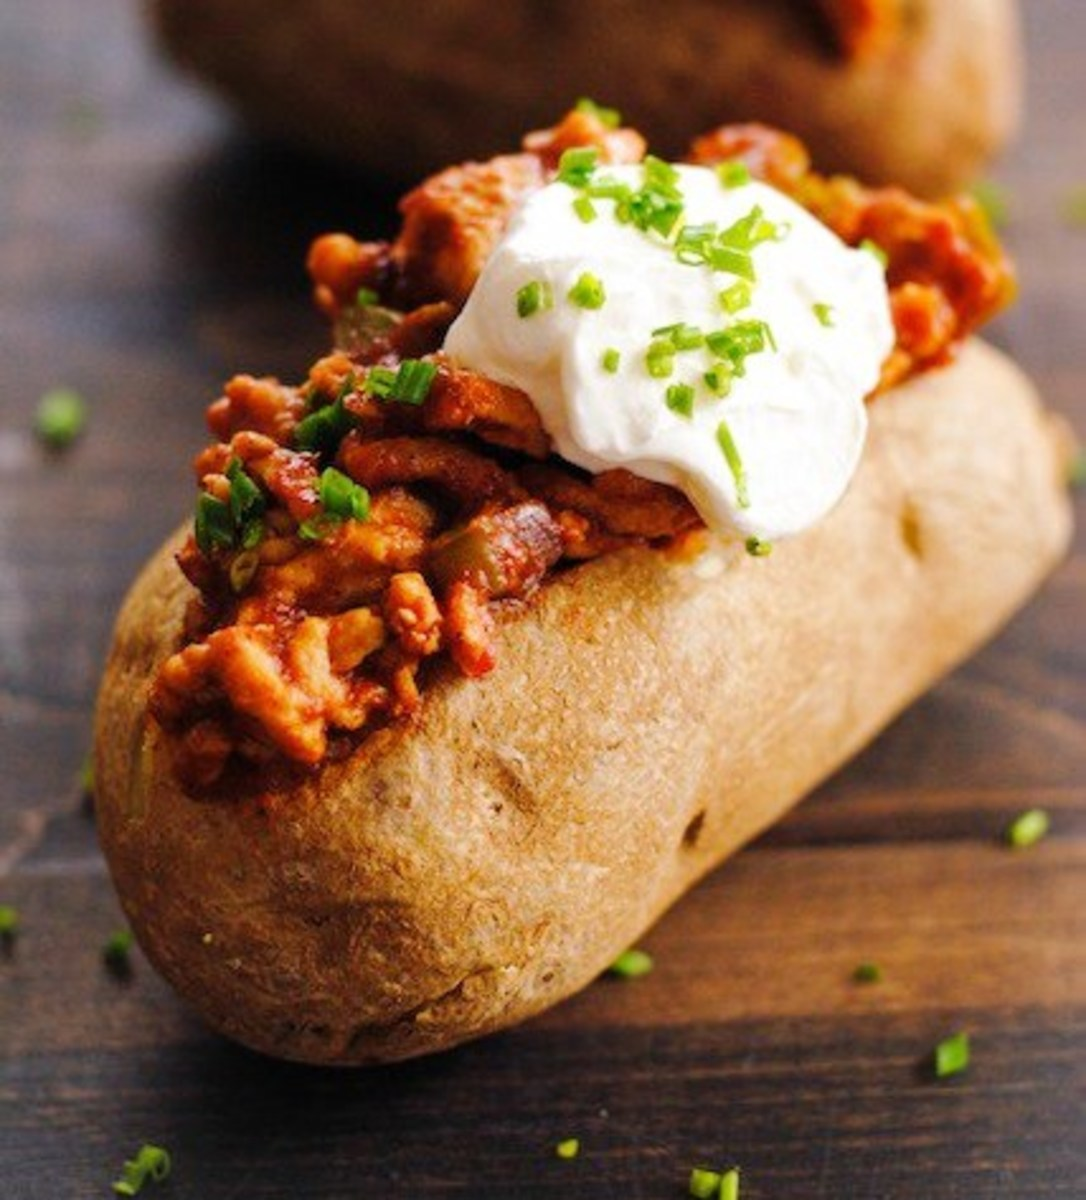 Sloppy Joe Stuffed Potatoes